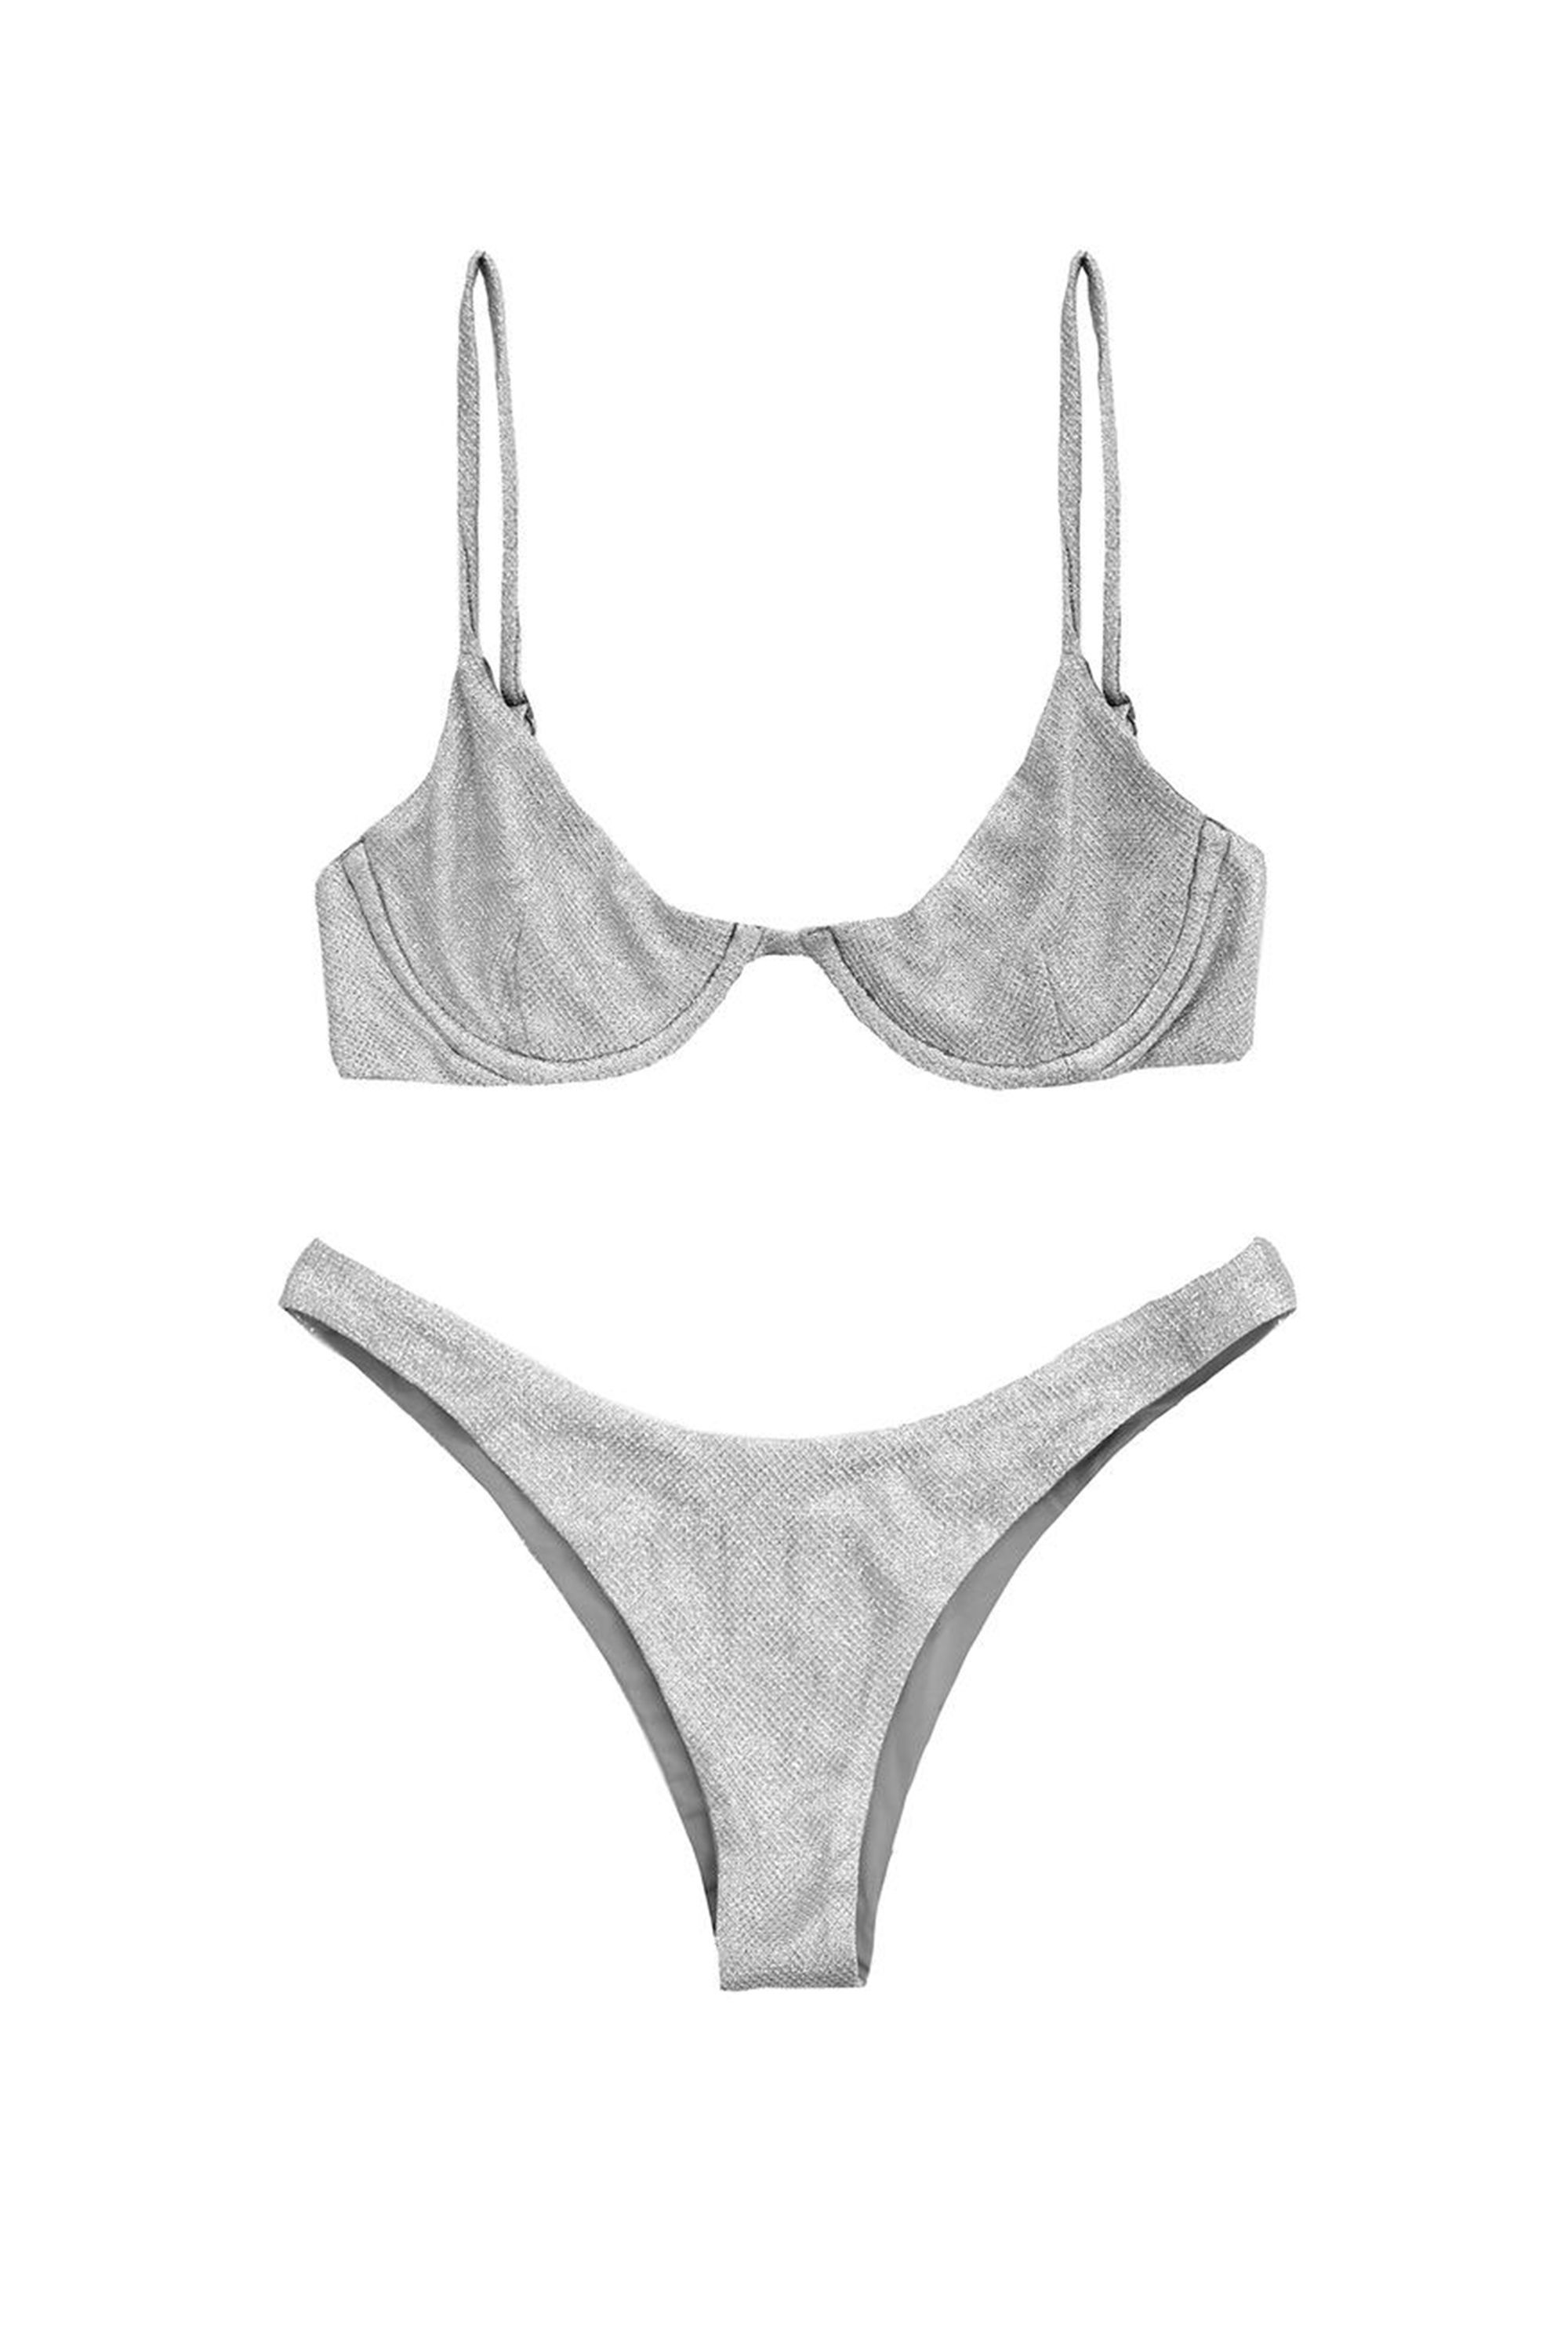 0bfe2d88b4 21 Hottest Swimwear Brands of 2019 - 21 Designer Bathing Suits to Try Now